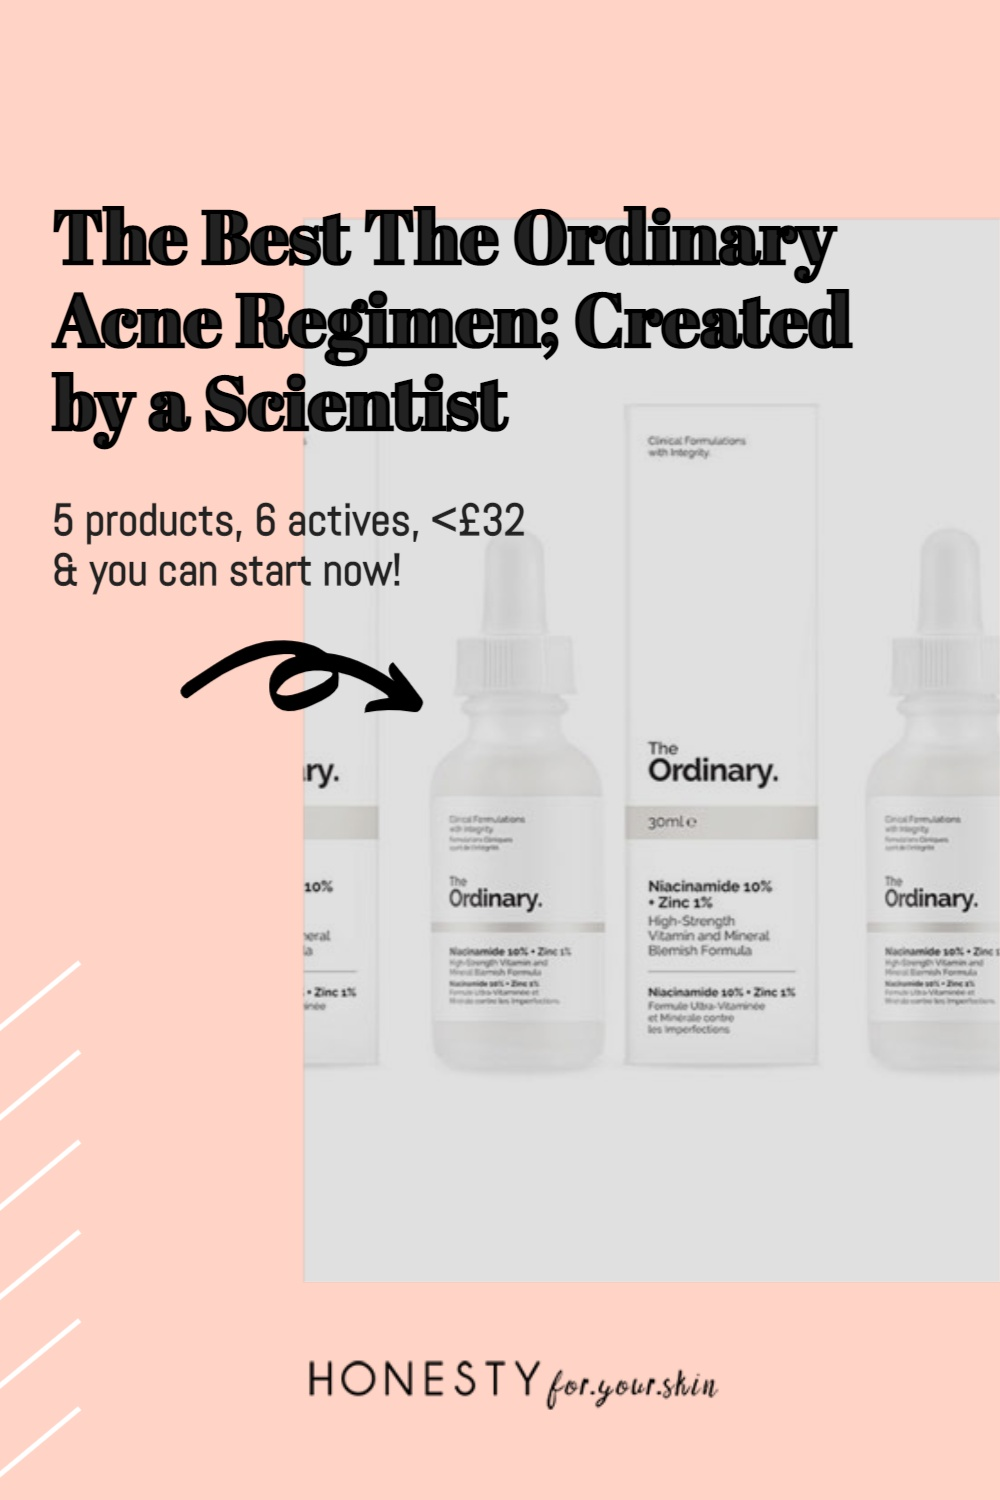 Looking to kick butt to your acne? Have spots that revolve in a 30 day cycle and skin that never seems clear? Want to treat your acne intelligently with skincare that's effective and (best part) doesn't break the bank? Yes? Well you my friend are in need of something called the ordinary acne regimen - the irony is, the products you'll be using alongside their actives and price tags are not so ordinary at all. Come see what I mean. Click to read more about The Ordinary acne regimen.